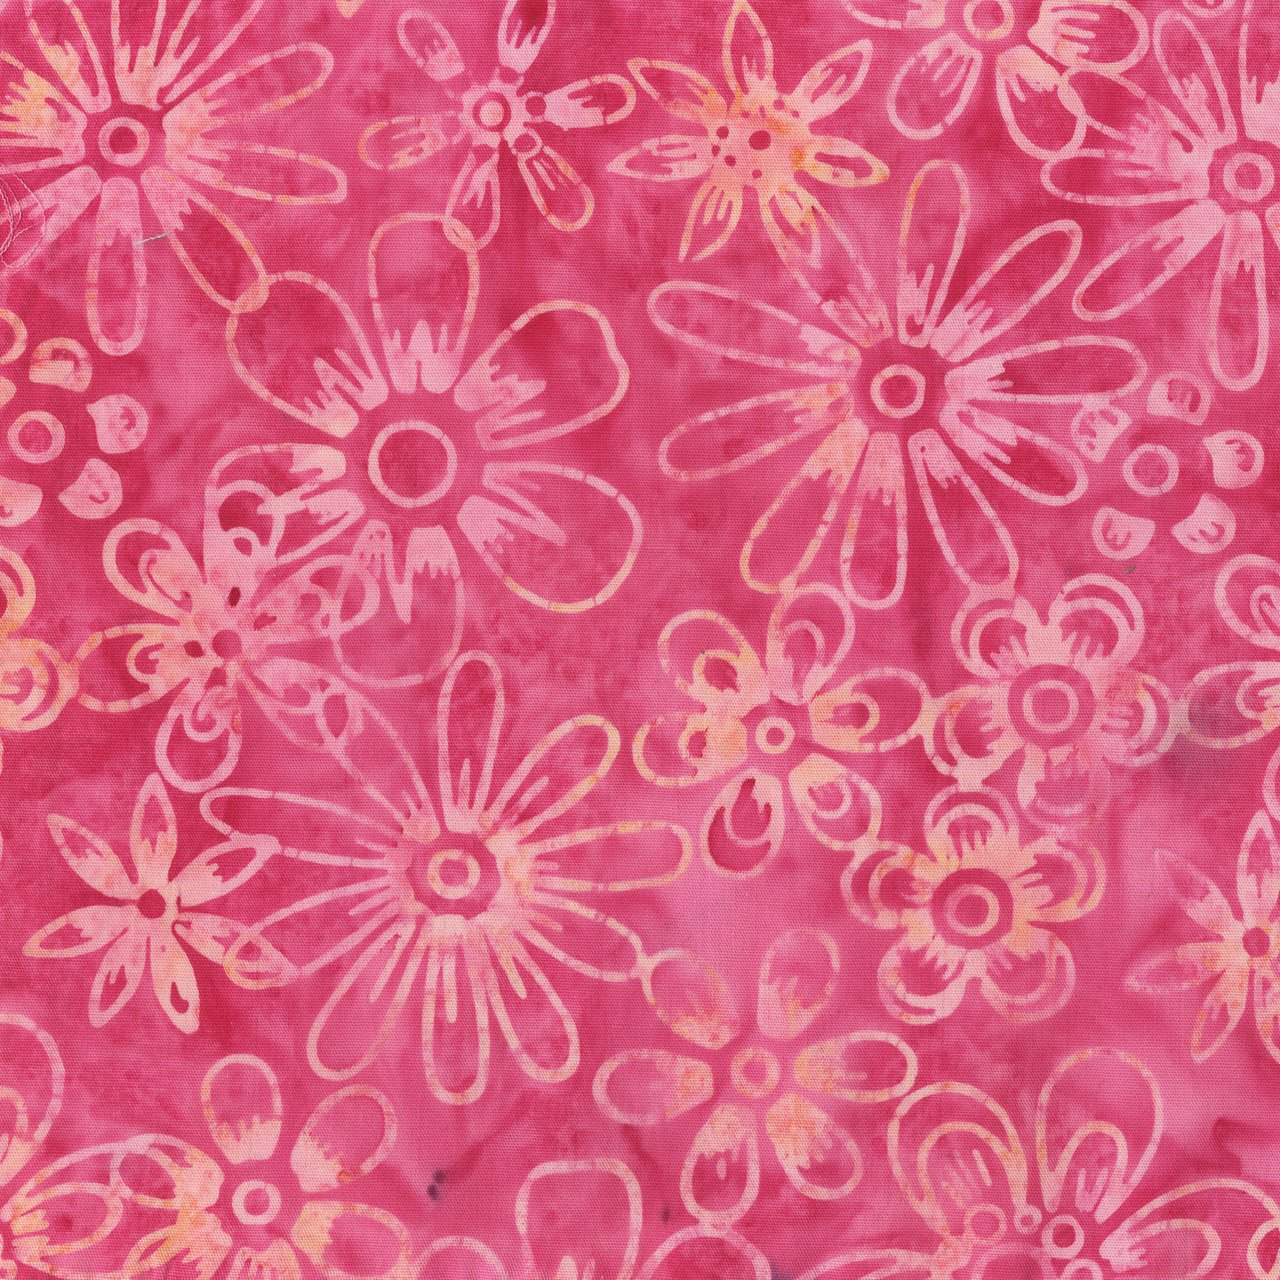 Anthology Bali - Flowers - Pink